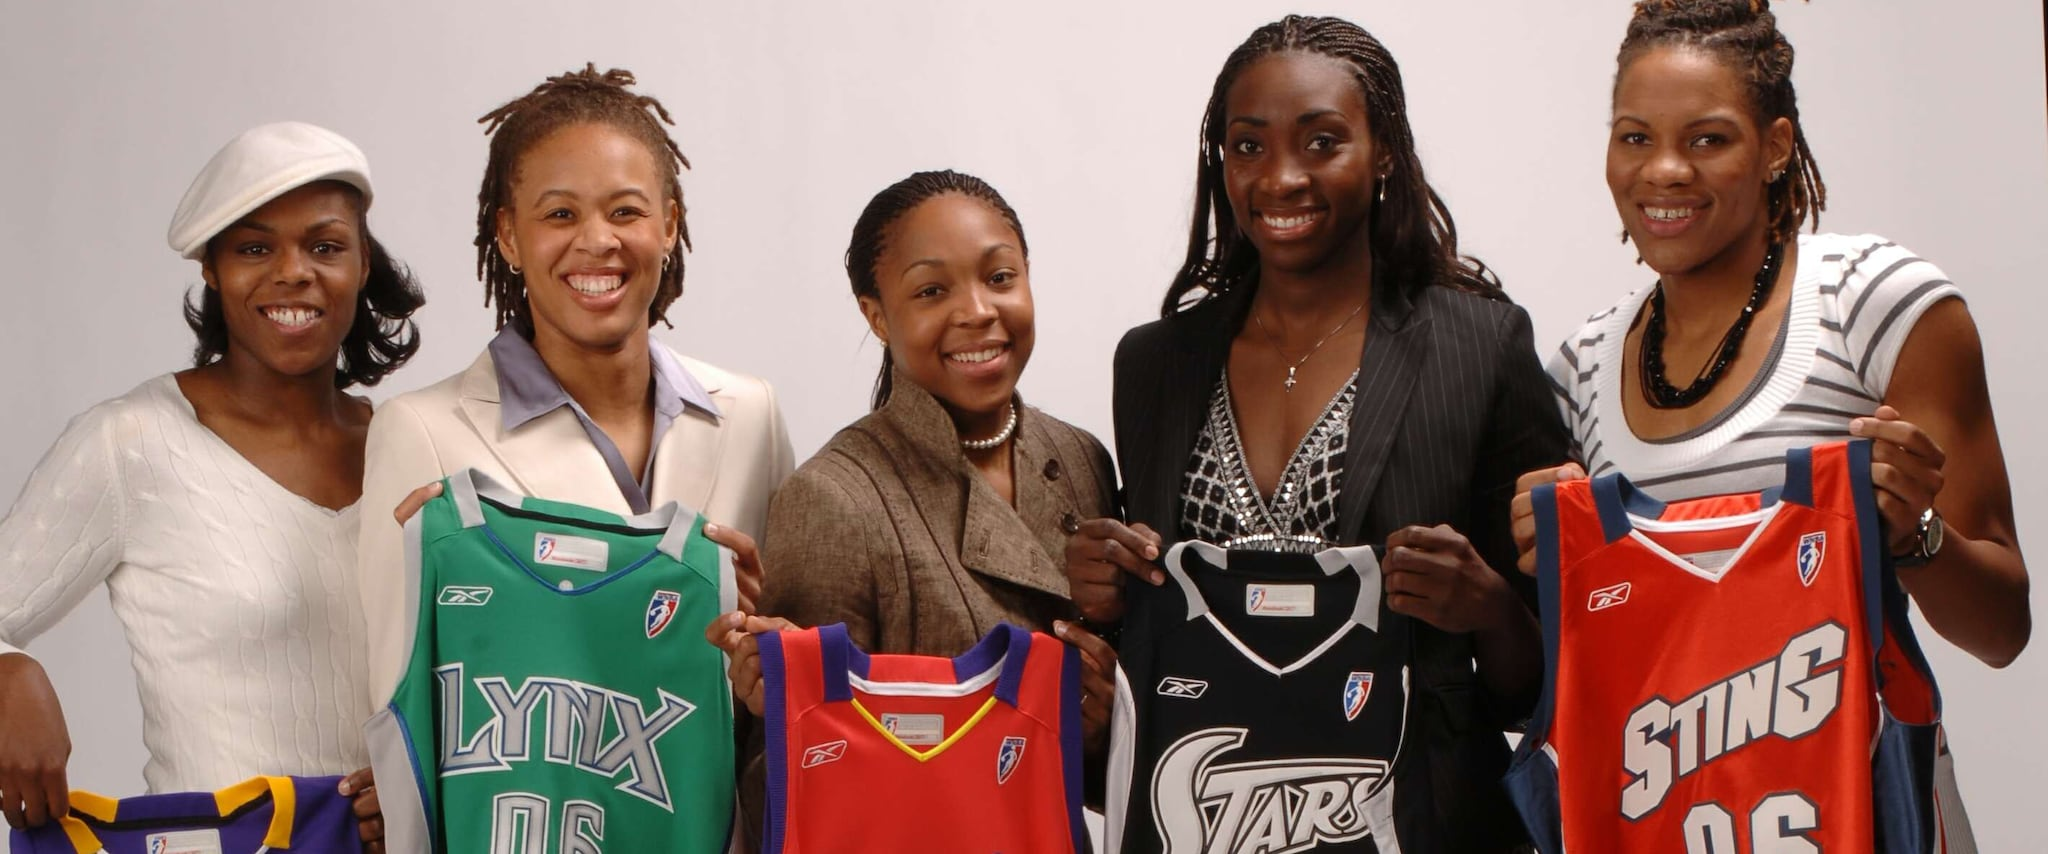 WNBA Mock Draft 2019: Who Will The Lynx Select In The First Round?